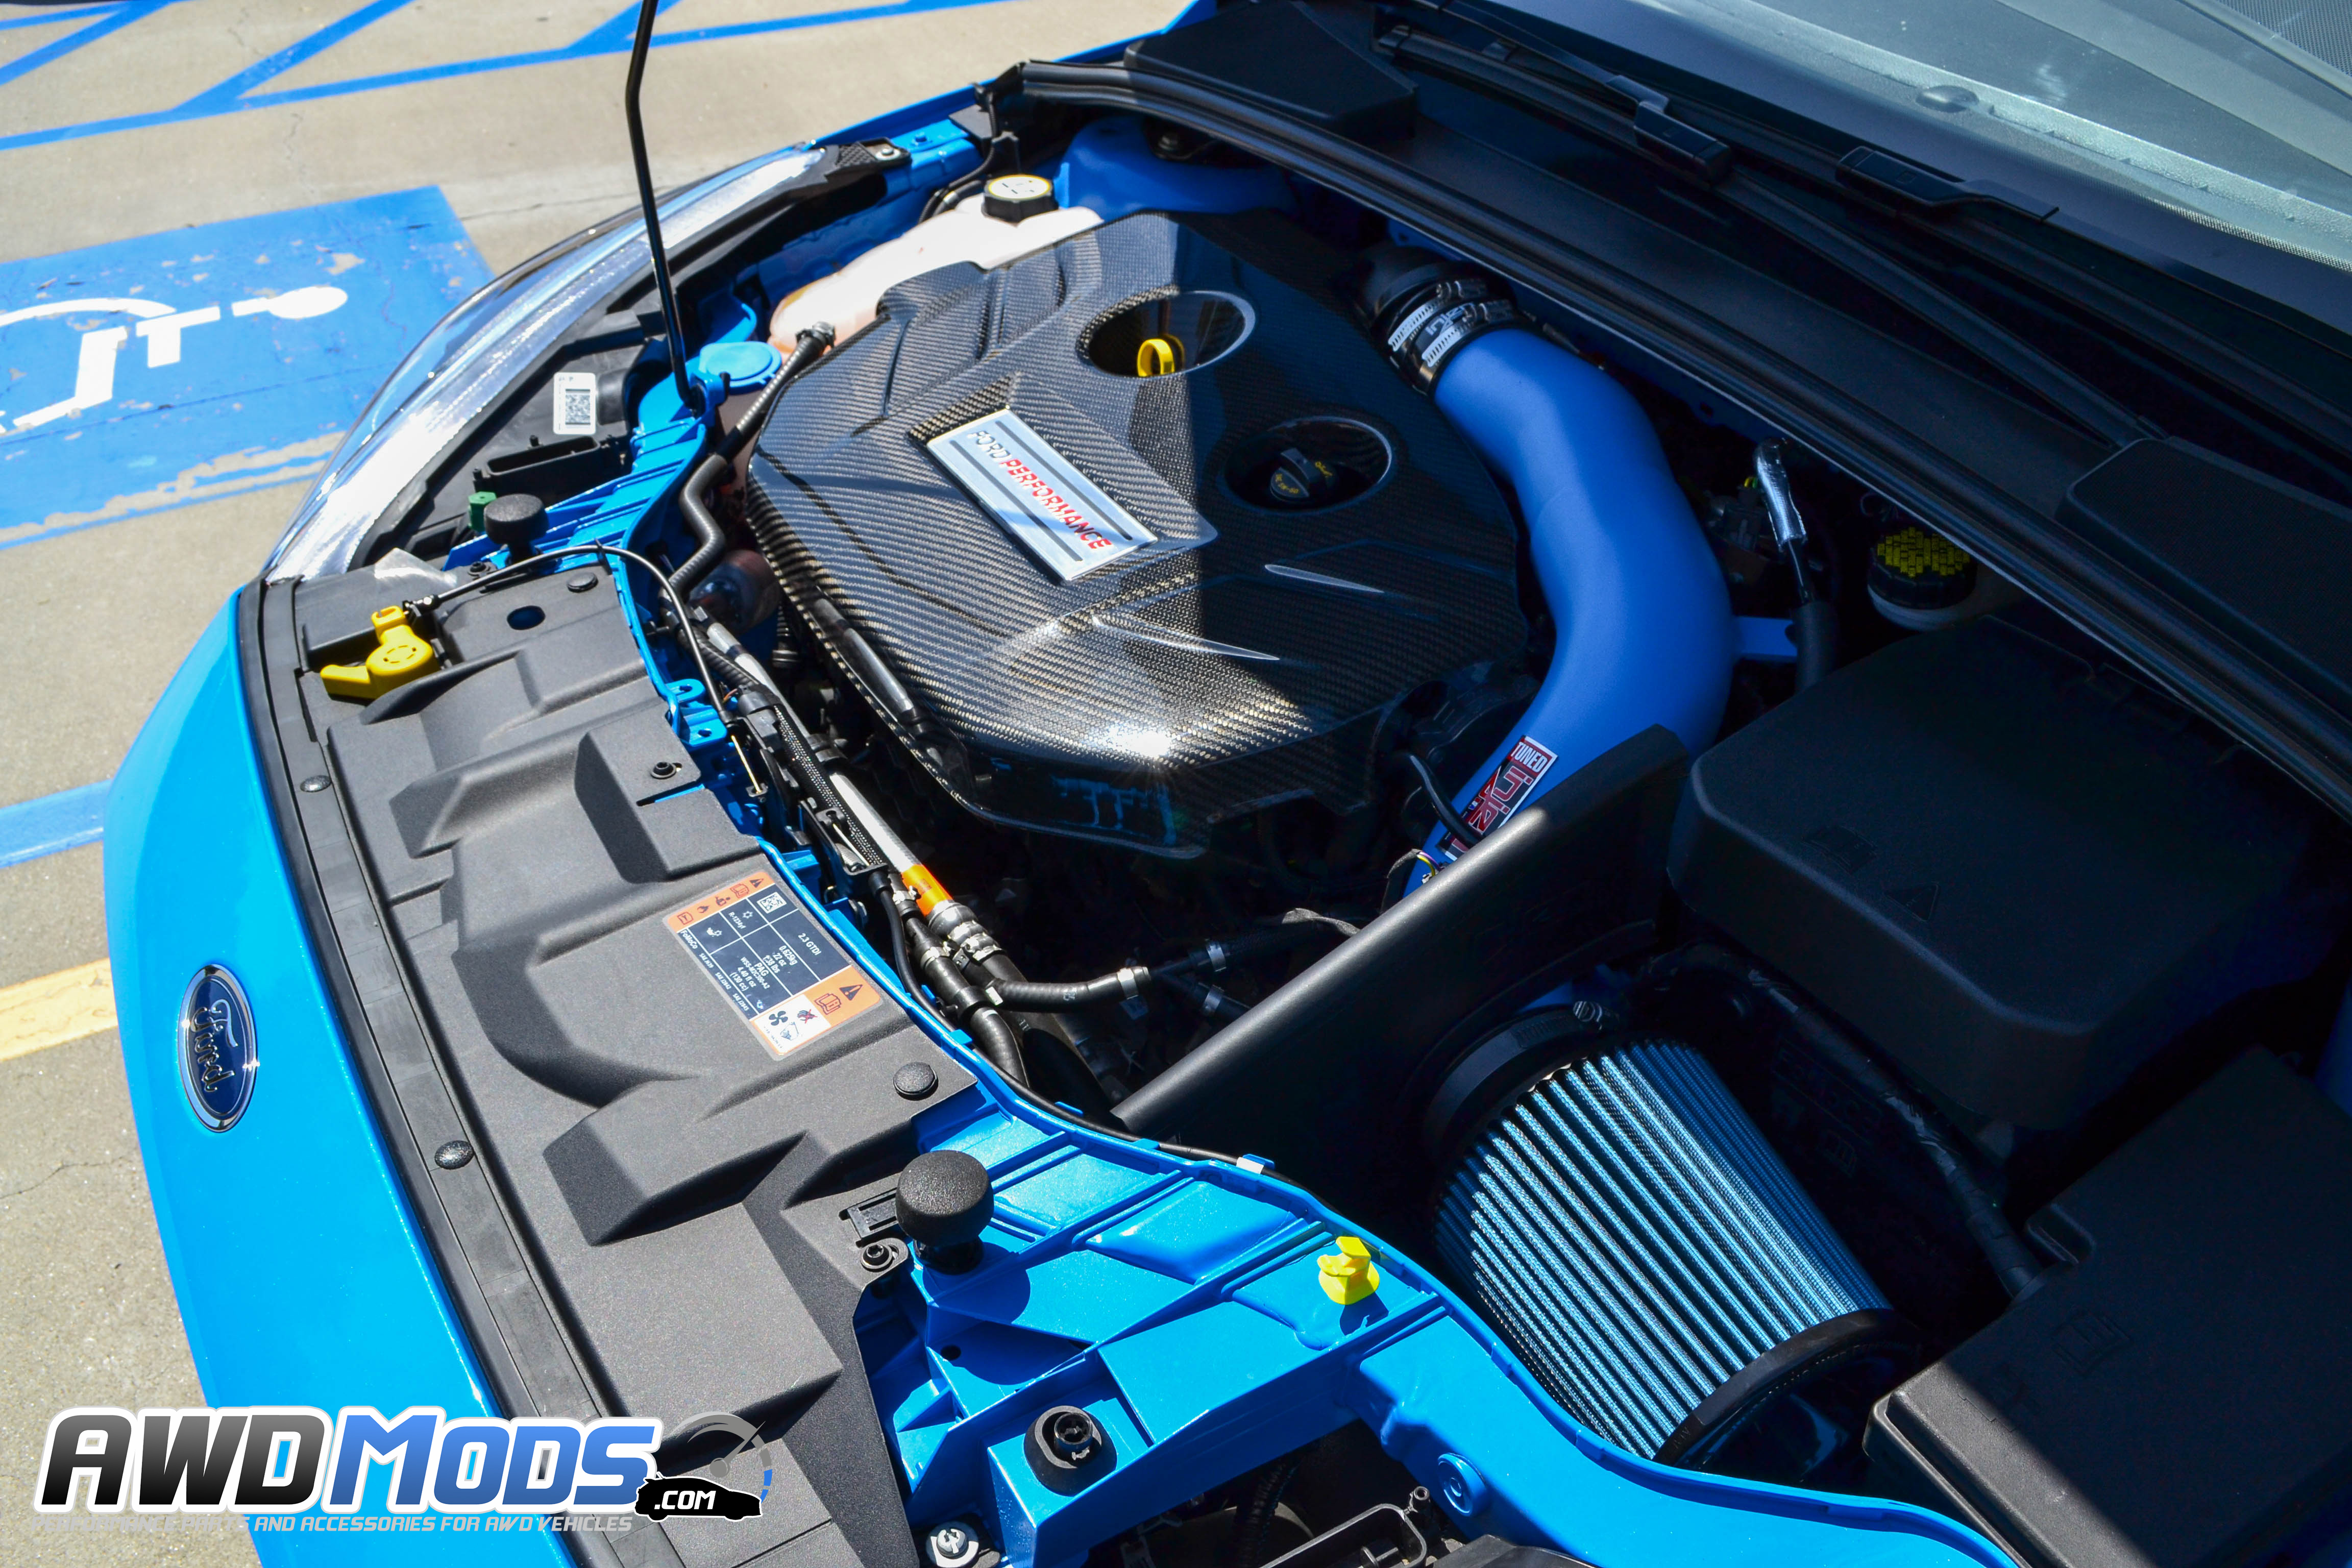 Ford Focus Rs Carbon Fiber Engine Plenum Cover By Cal Pony Cars Sti Fuse Box For The St